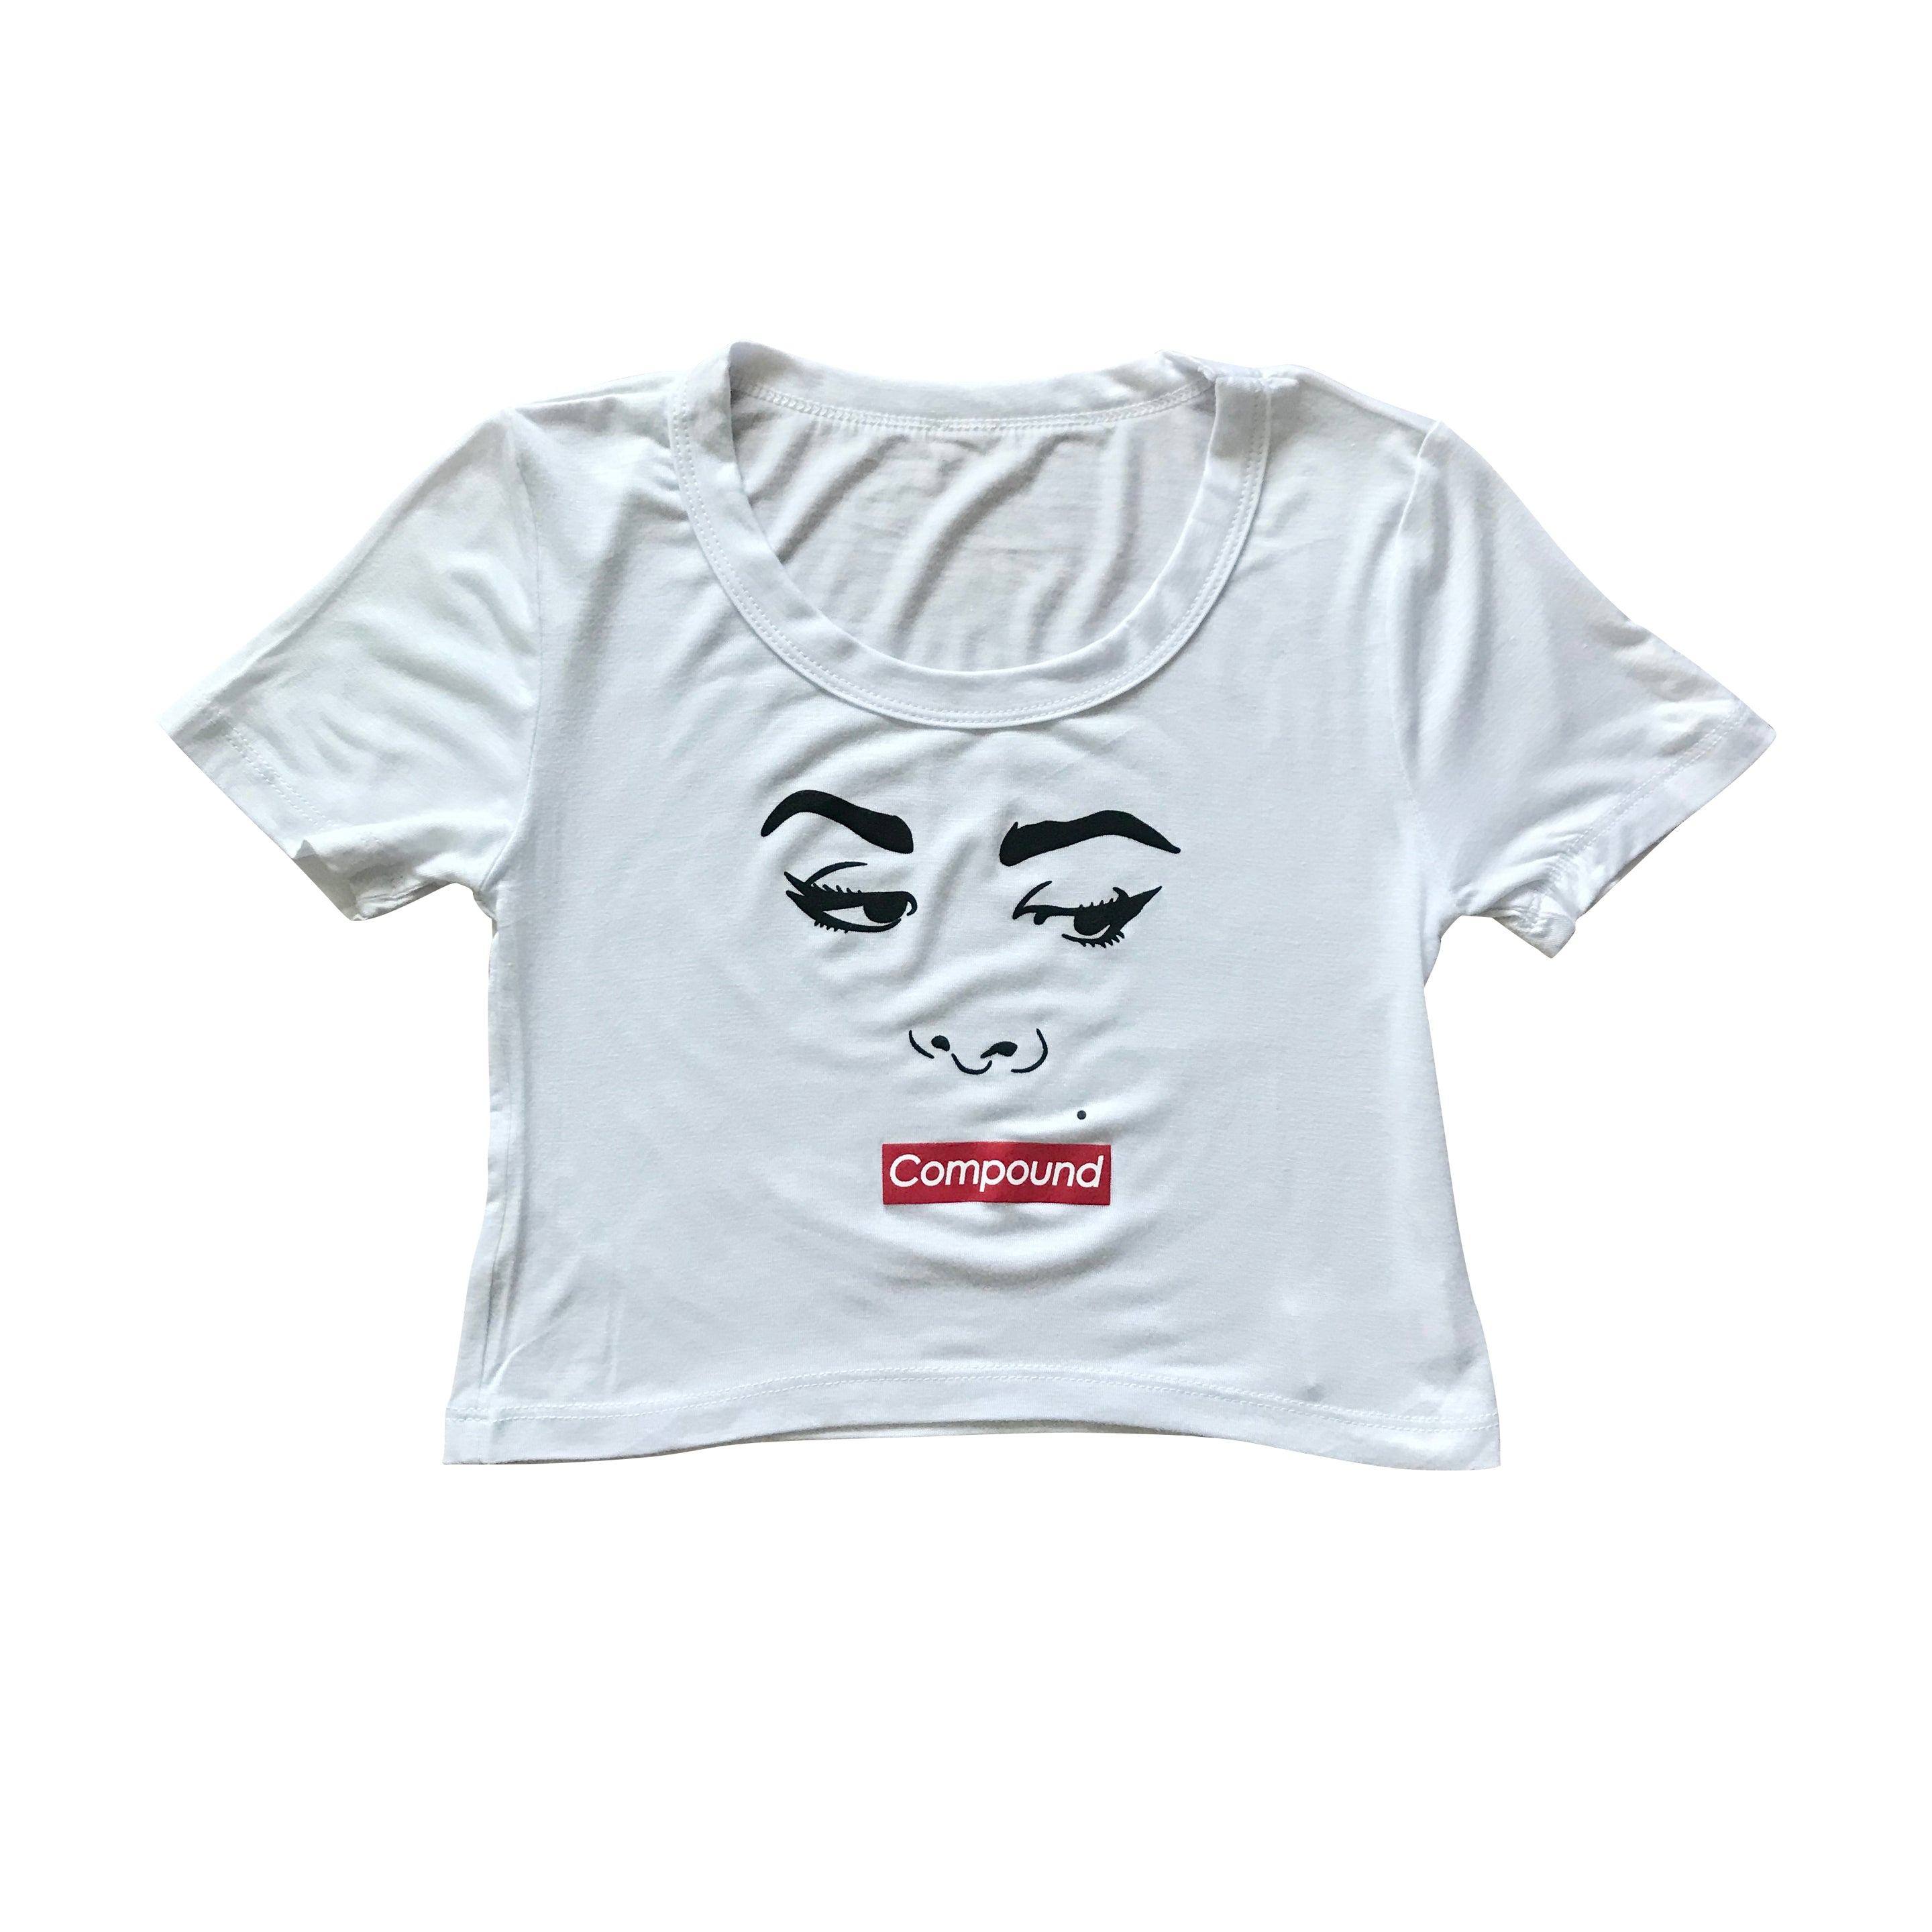 Women's Silence Crop Top (White)